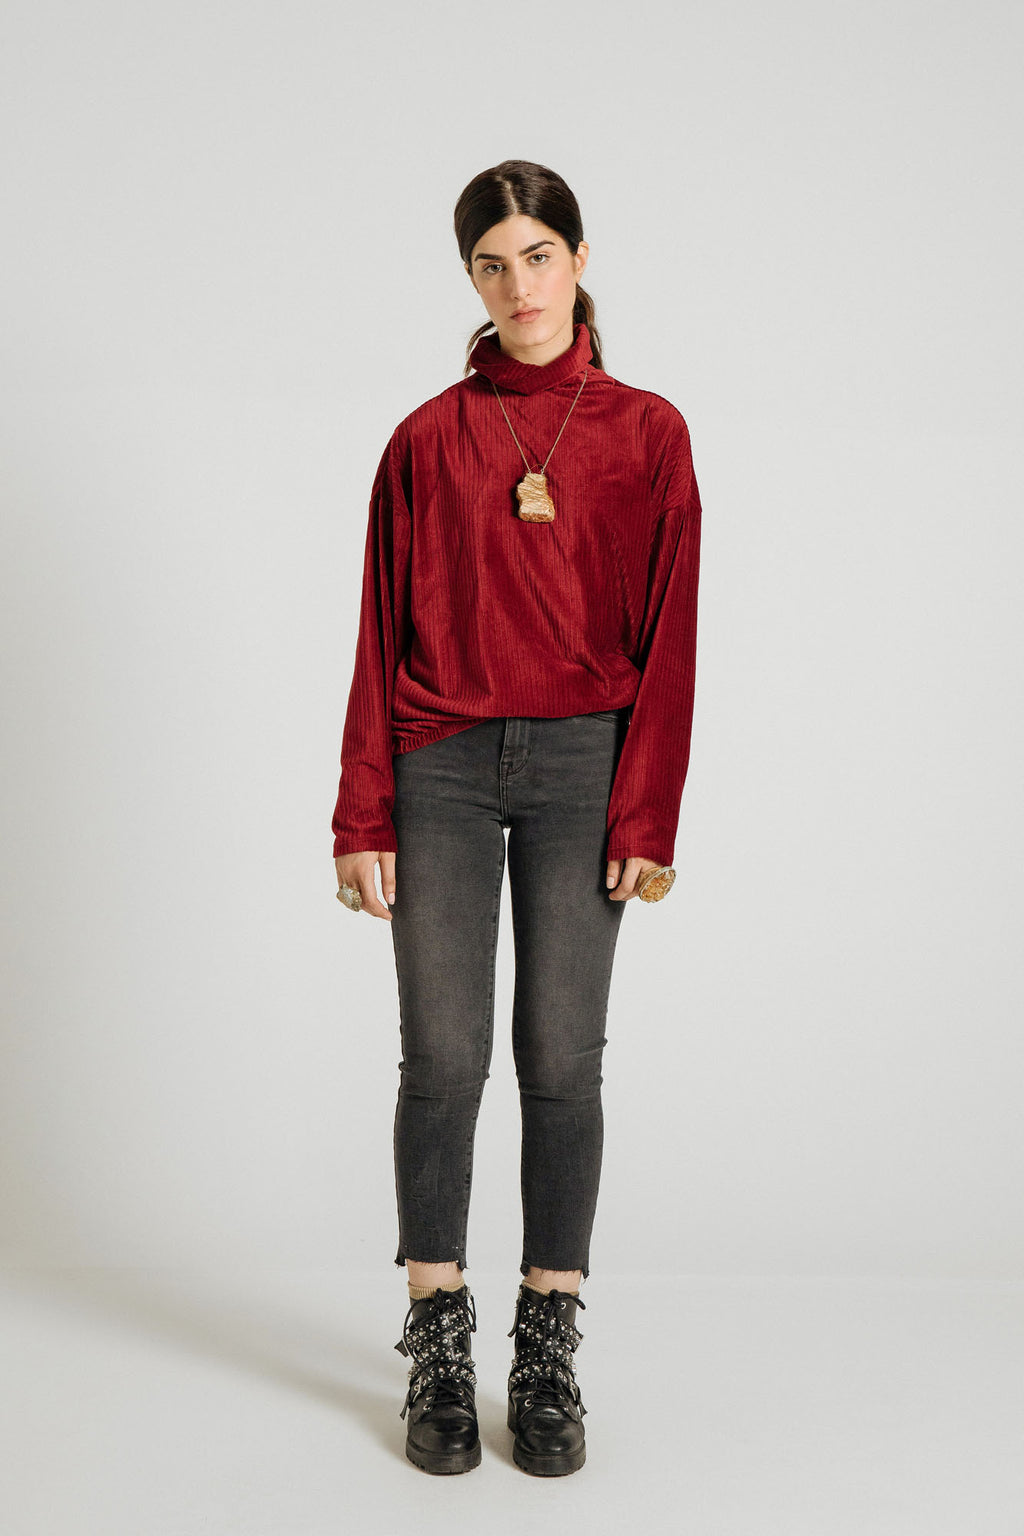 VELVET SWEATSHIRT (WTW401779) - Ethnic by Outfitters